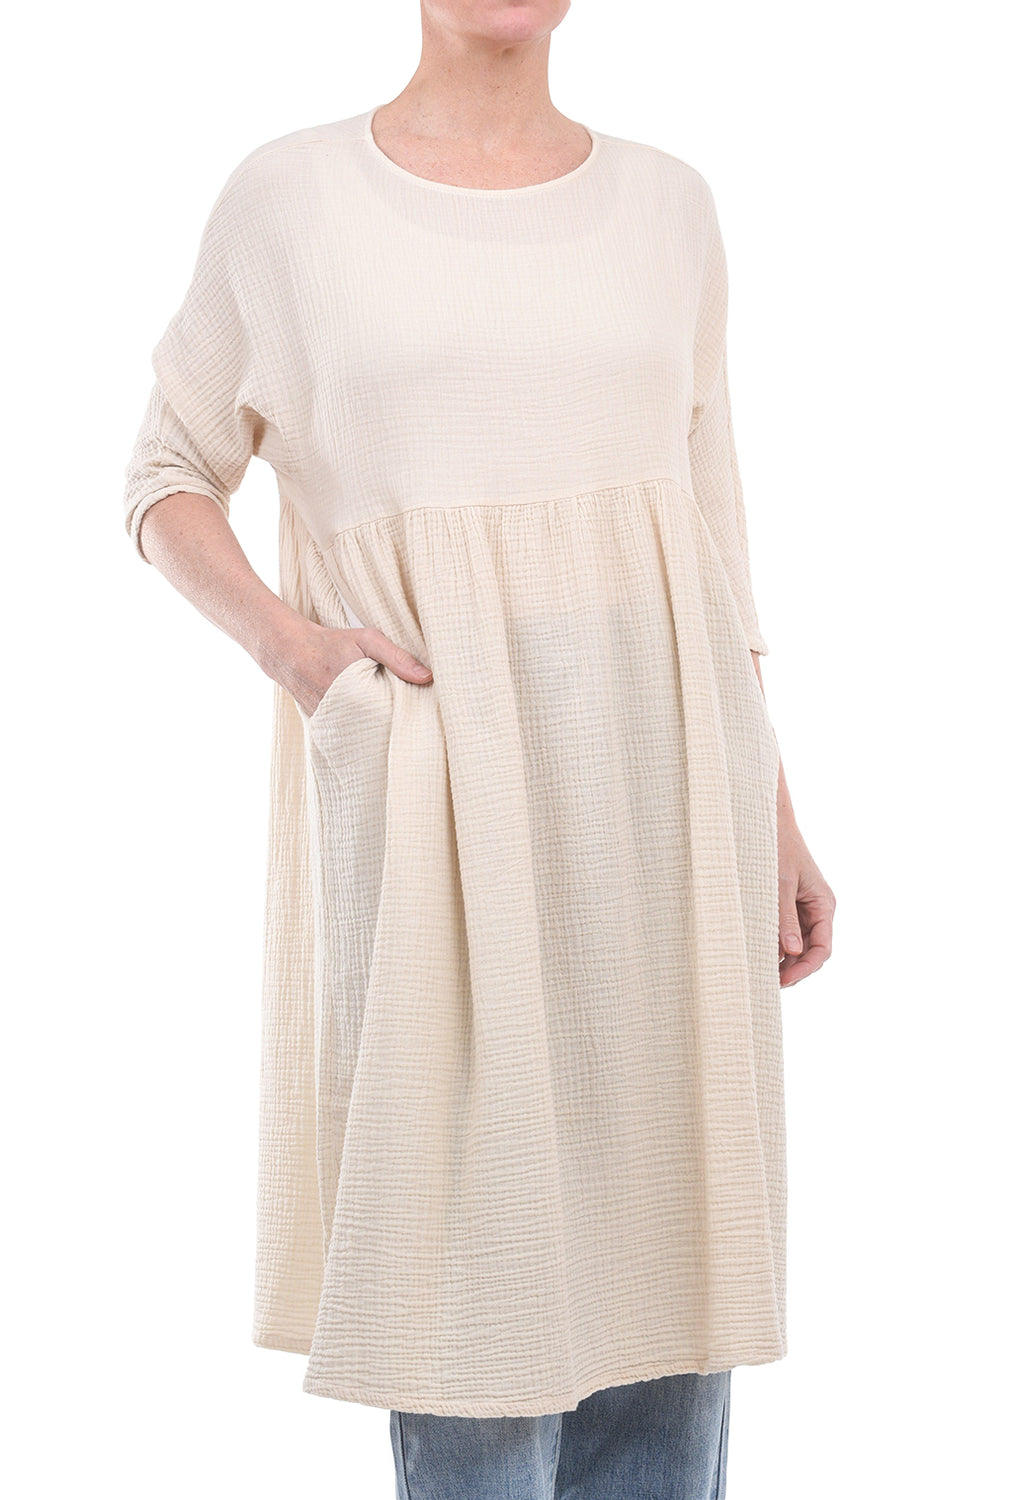 Filosofia Evelyn Dress, Cloud